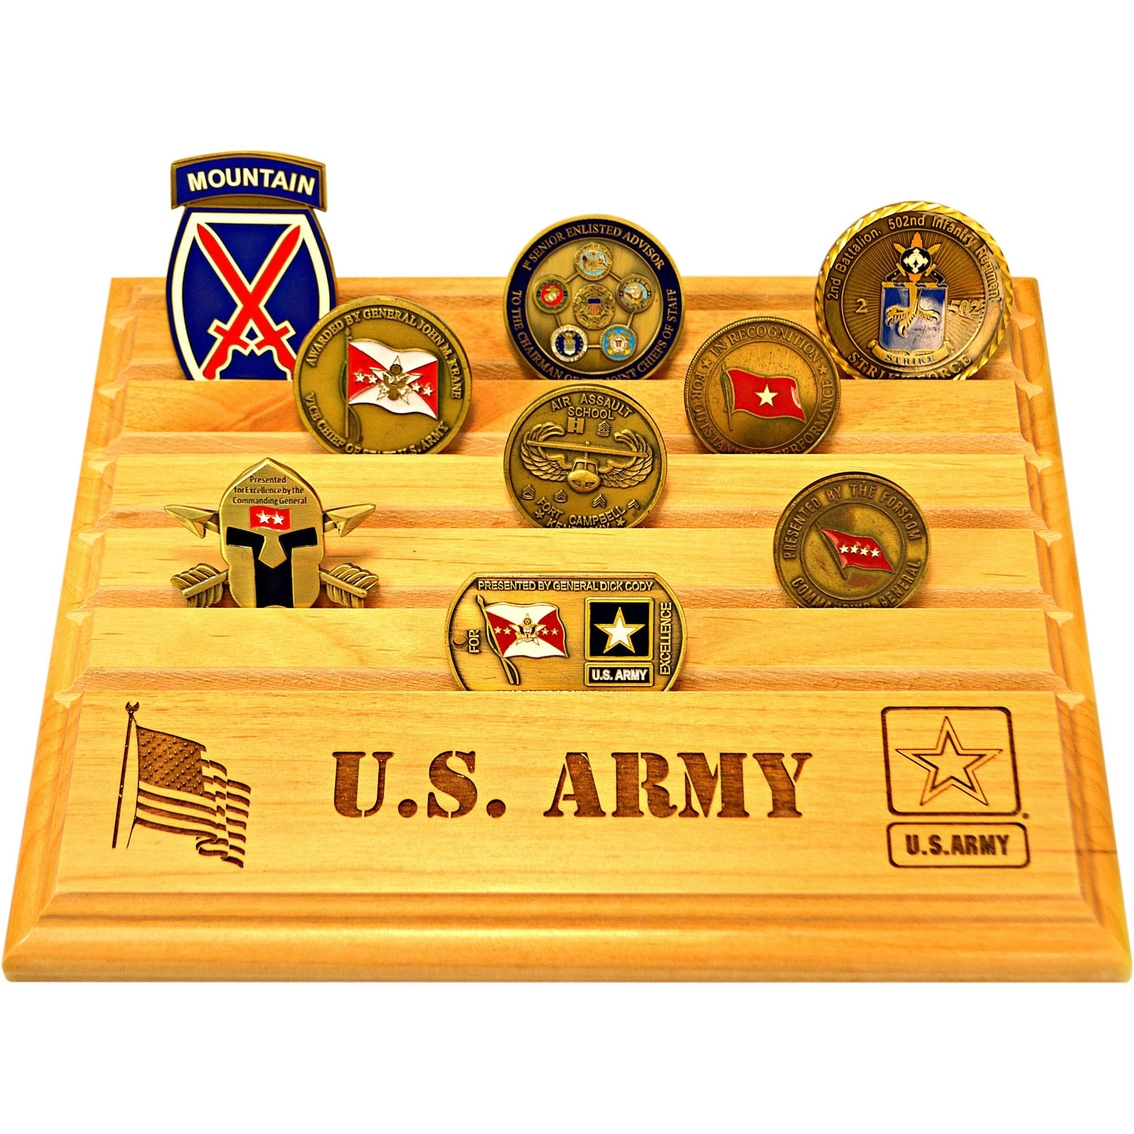 Mi Engraving Army 8 X 10 Coin Holder | Coins & Cases | Gifts & Food